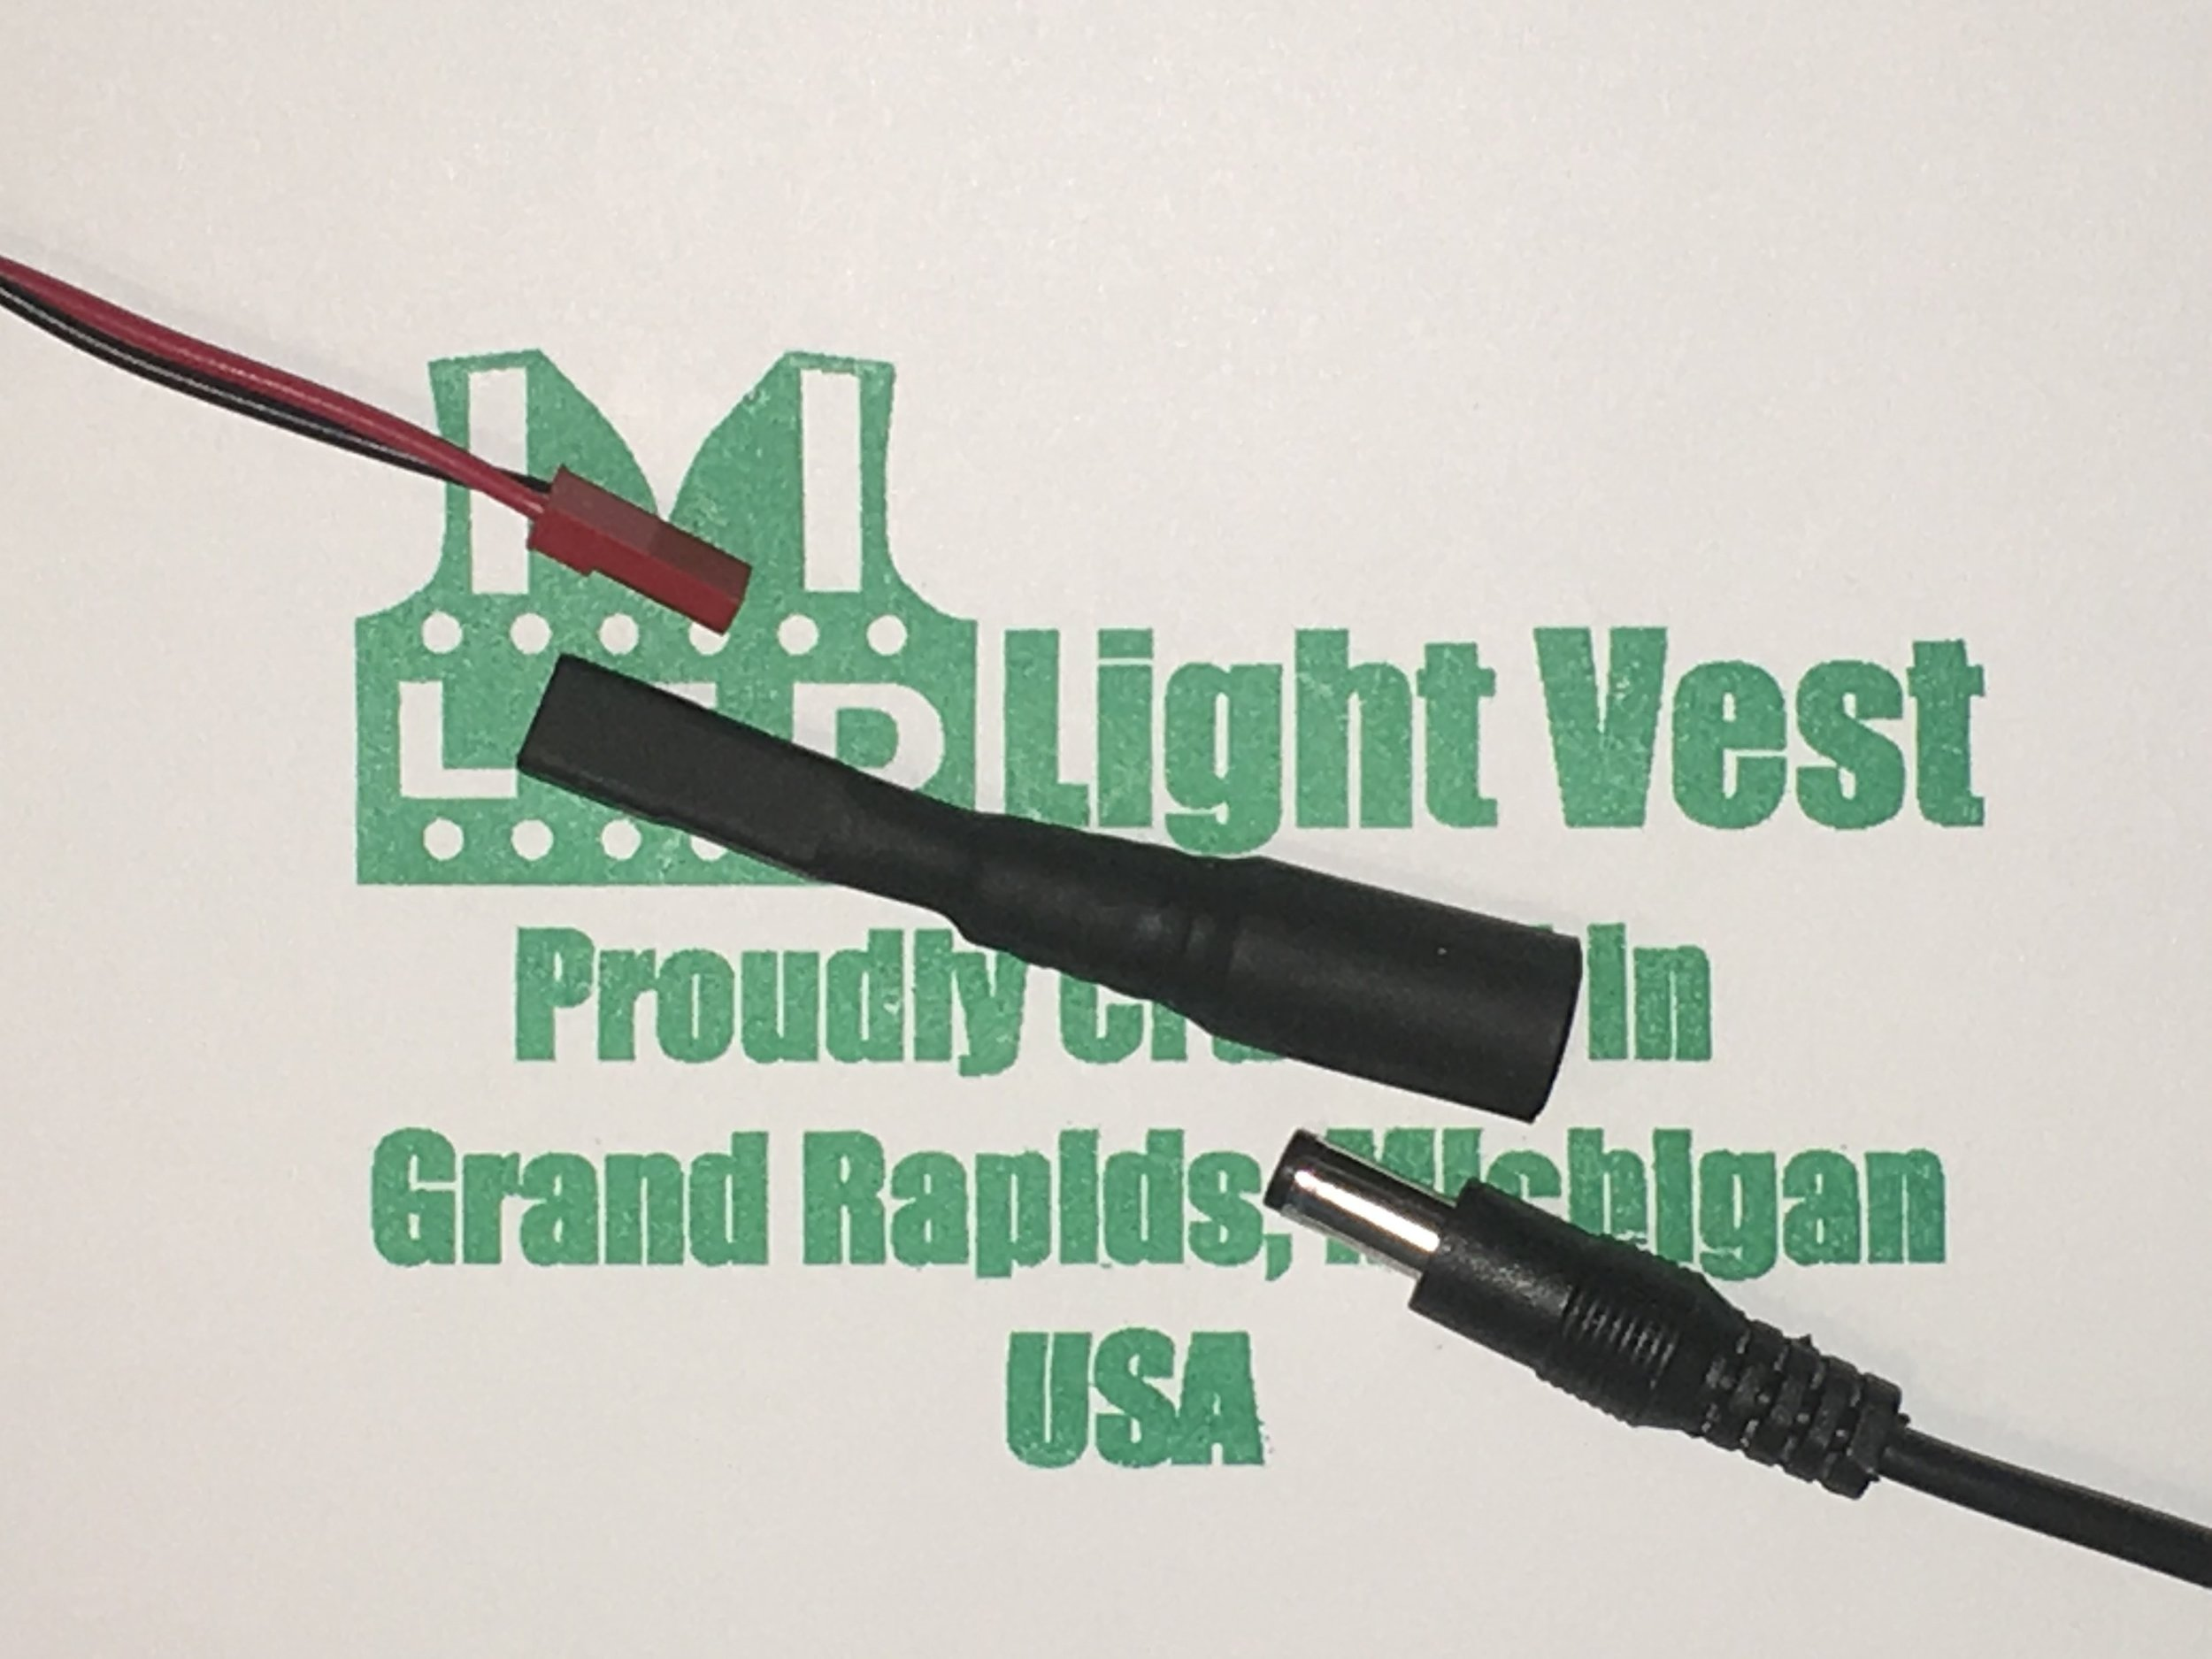 LED-Light-Vest-Charge-Adapter-Function.JPG